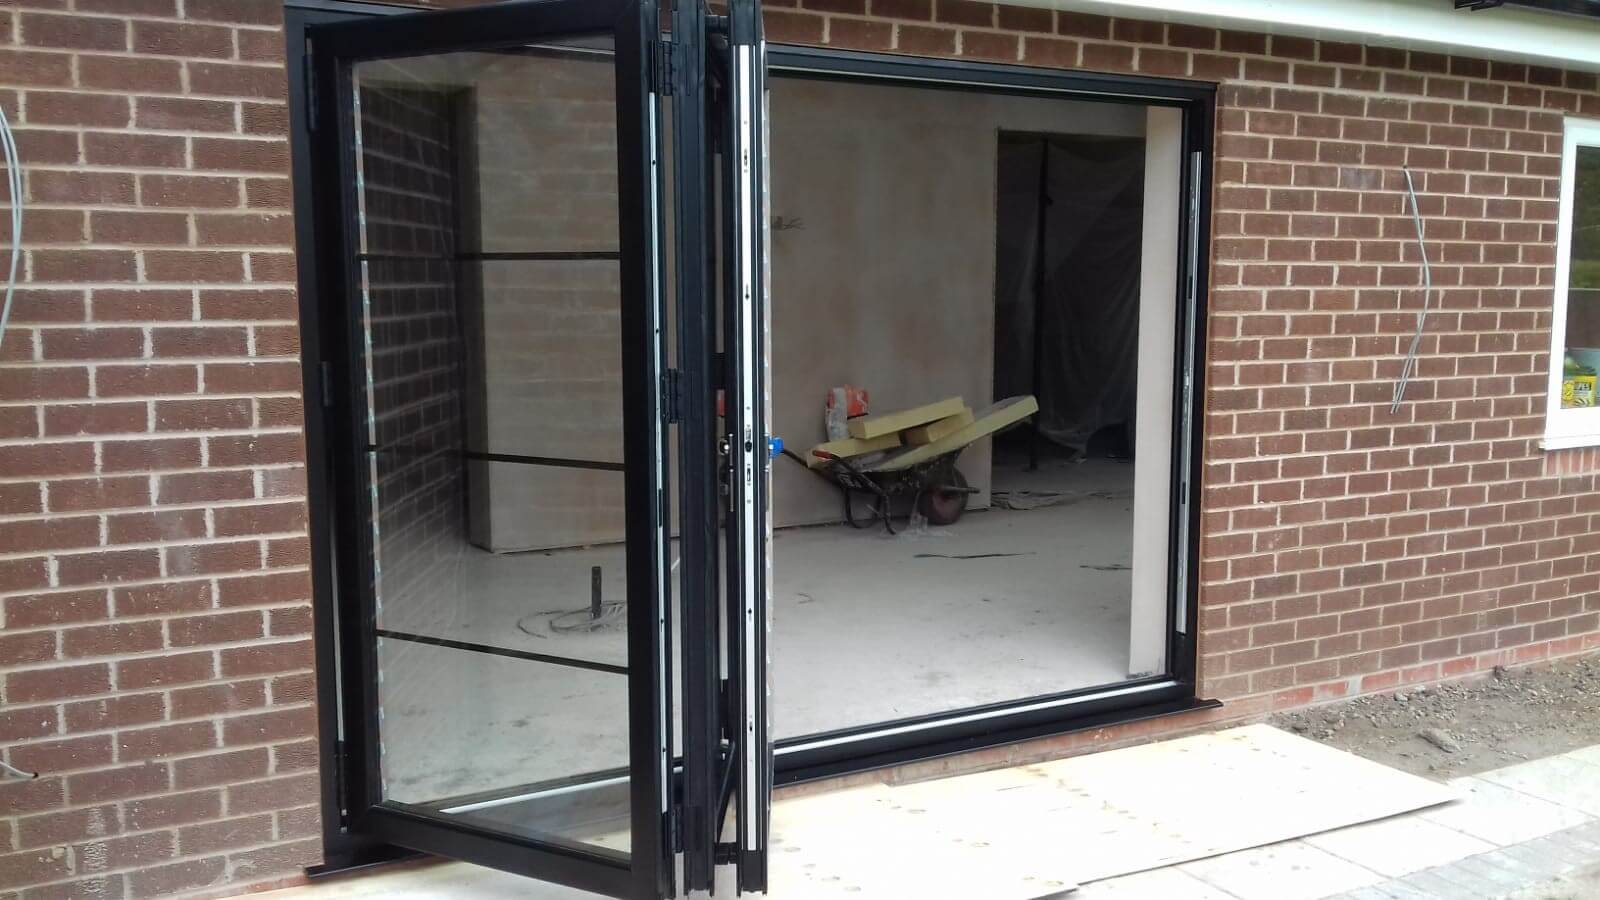 bi folds, bi folding doors, celsius home improvements, formby, merseyside.